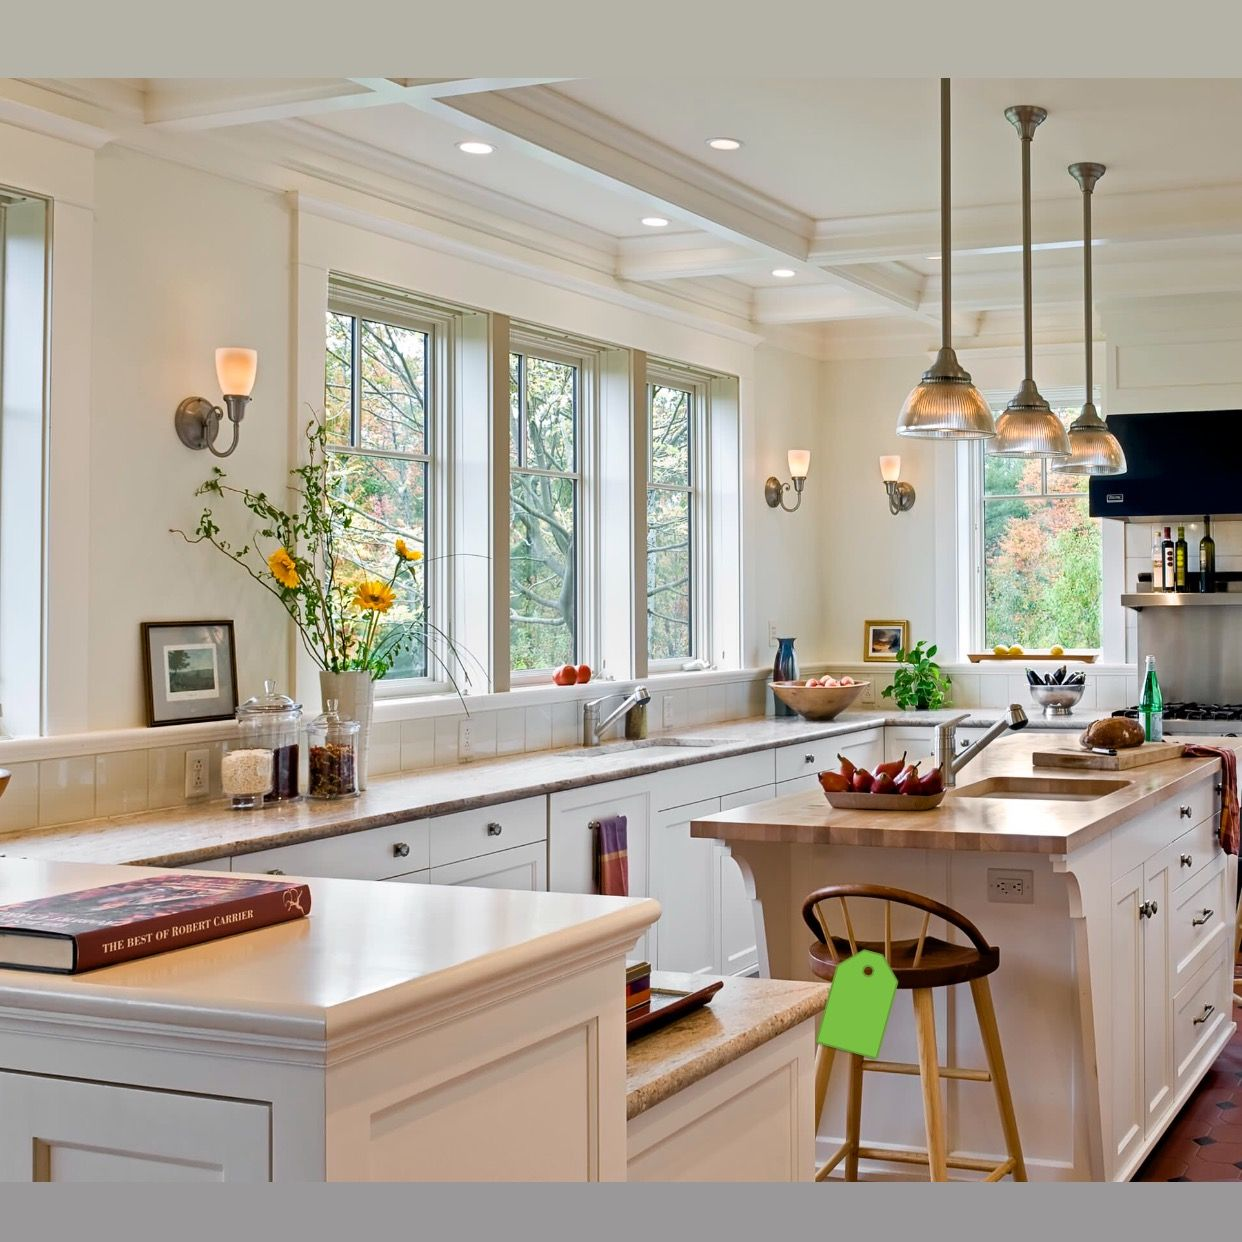 Bone white wall color BM Kitchens without upper